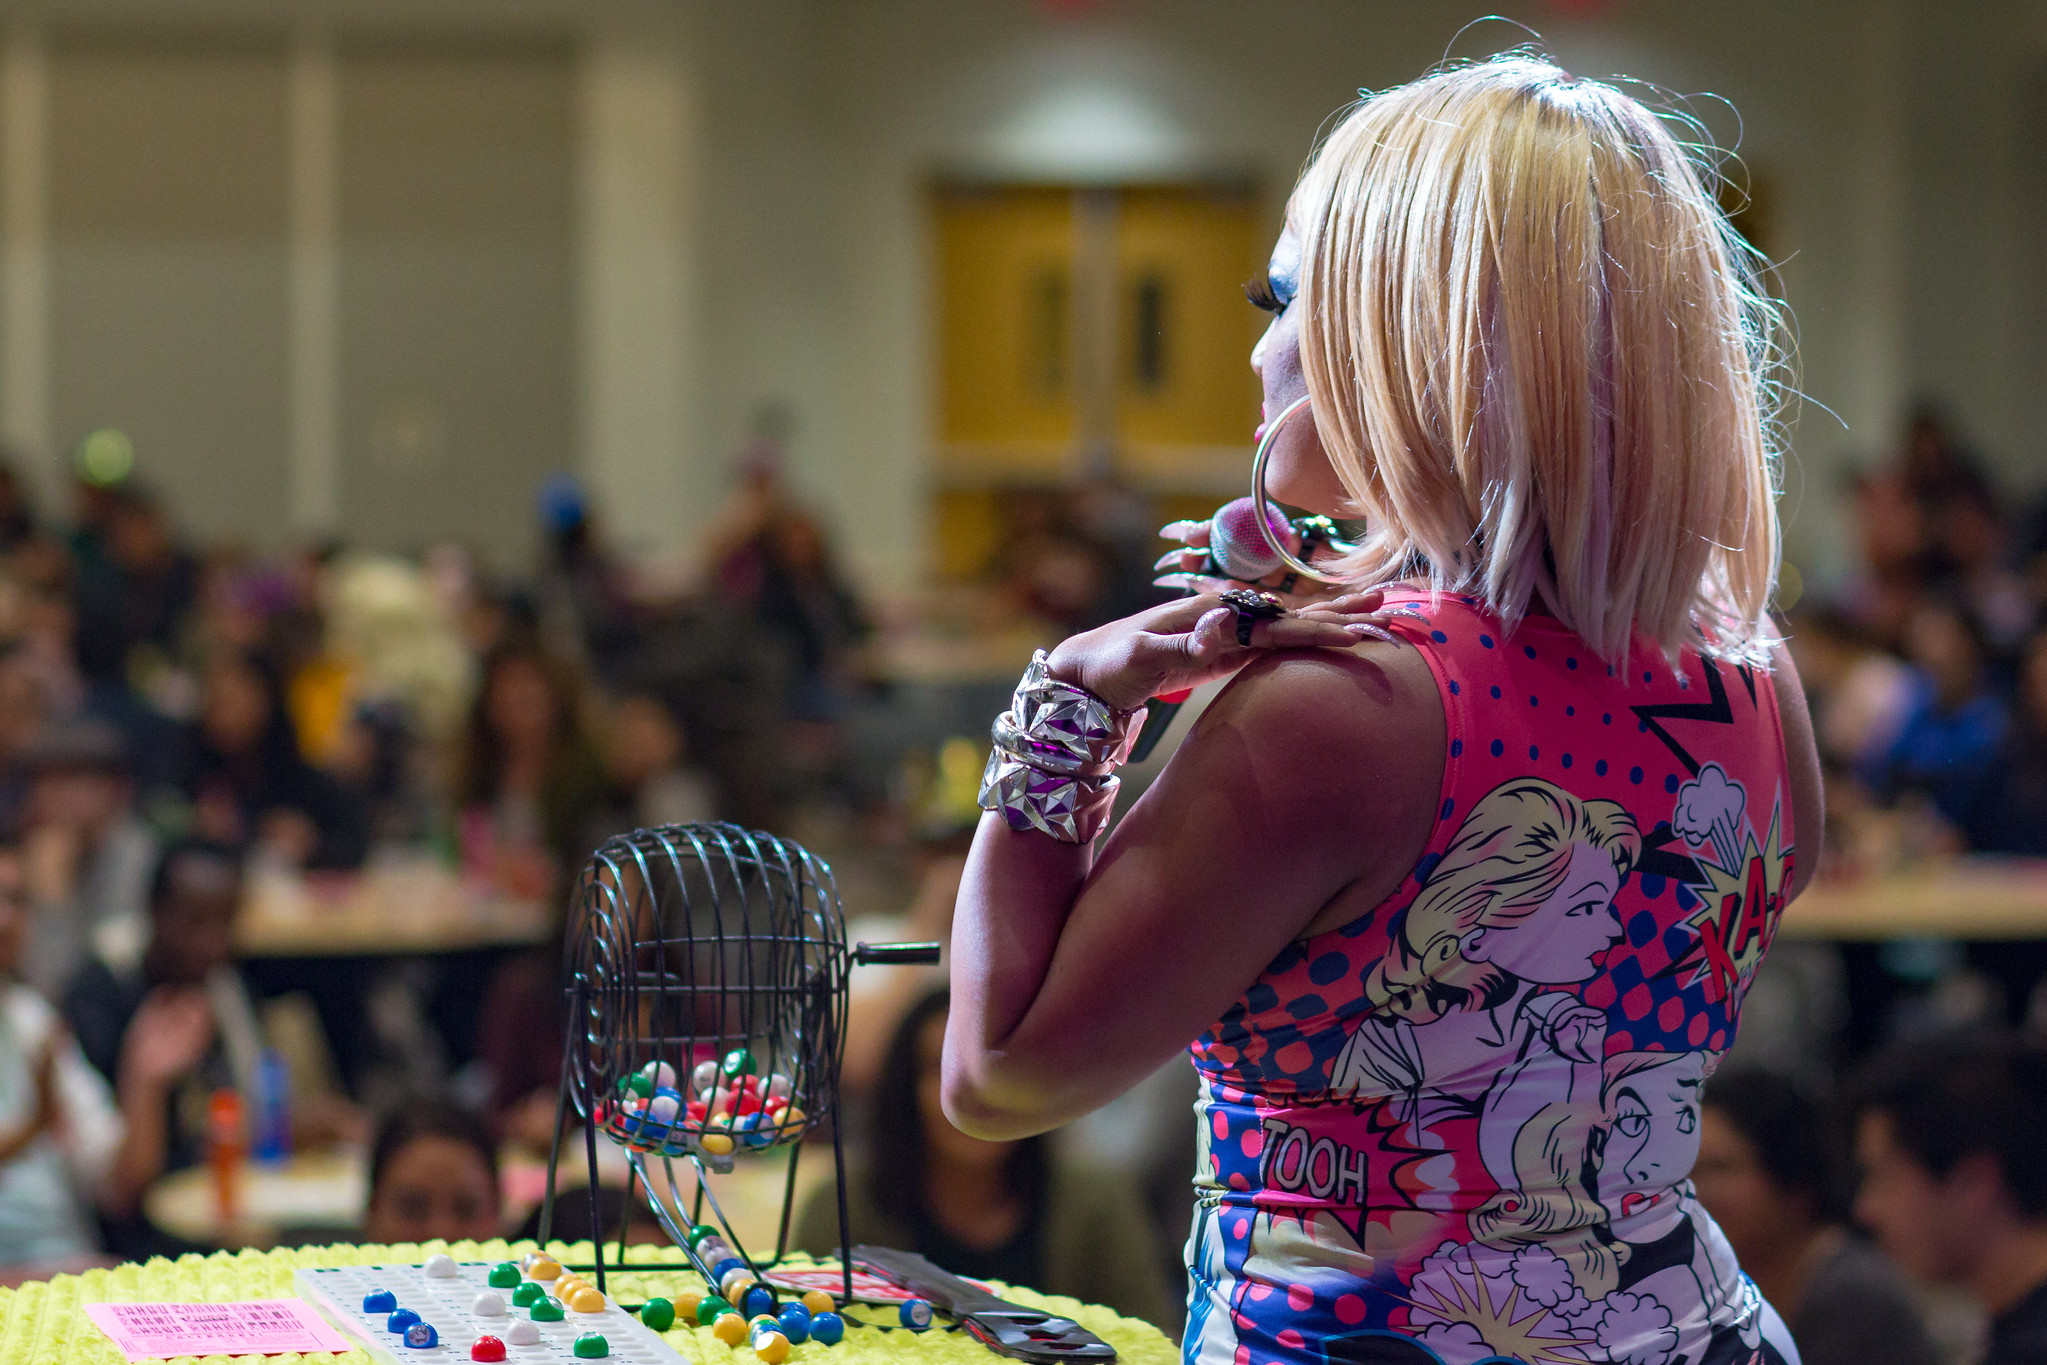 Wood looks out at the crowd during a round of Drag Bingo.